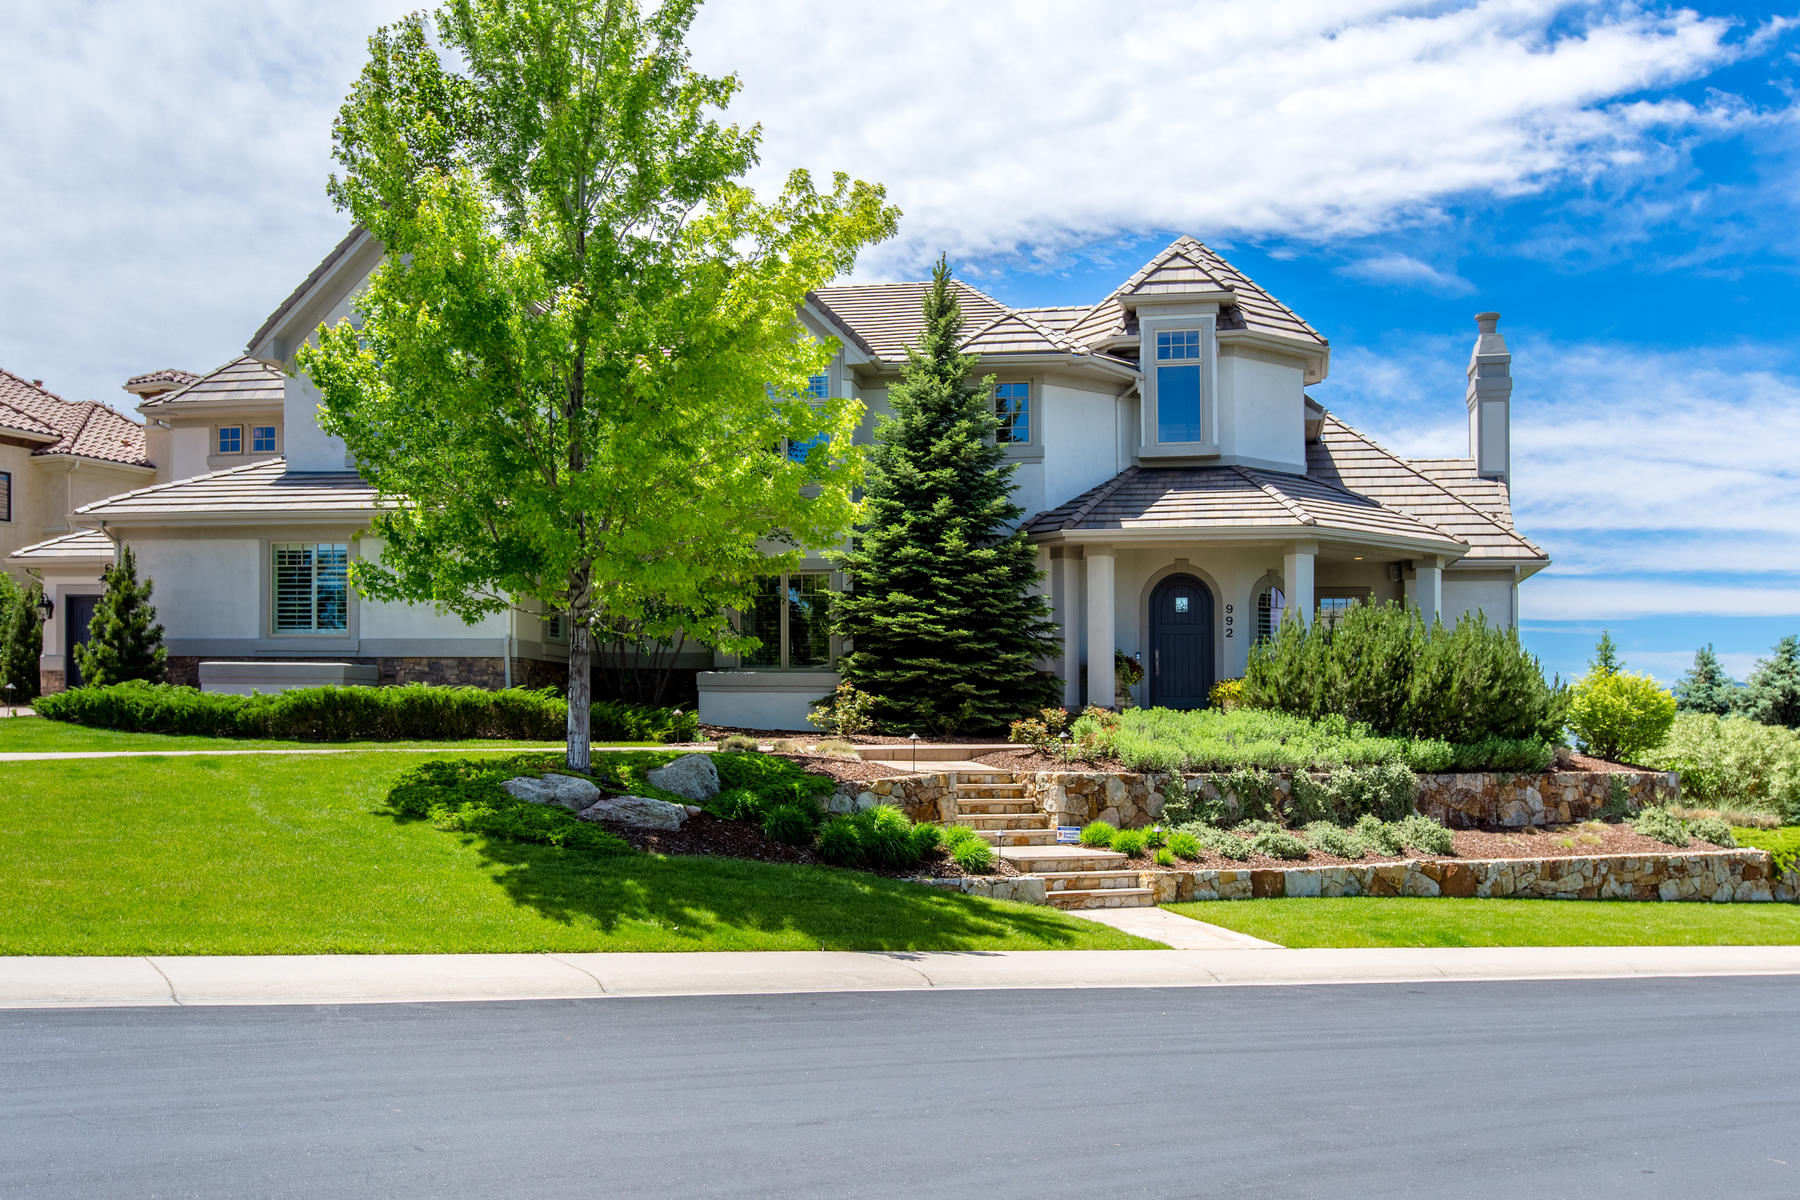 Single Family Homes for Sale at Step Into Your Dream Home! 992 Michener Way Highlands Ranch, Colorado 80126 United States